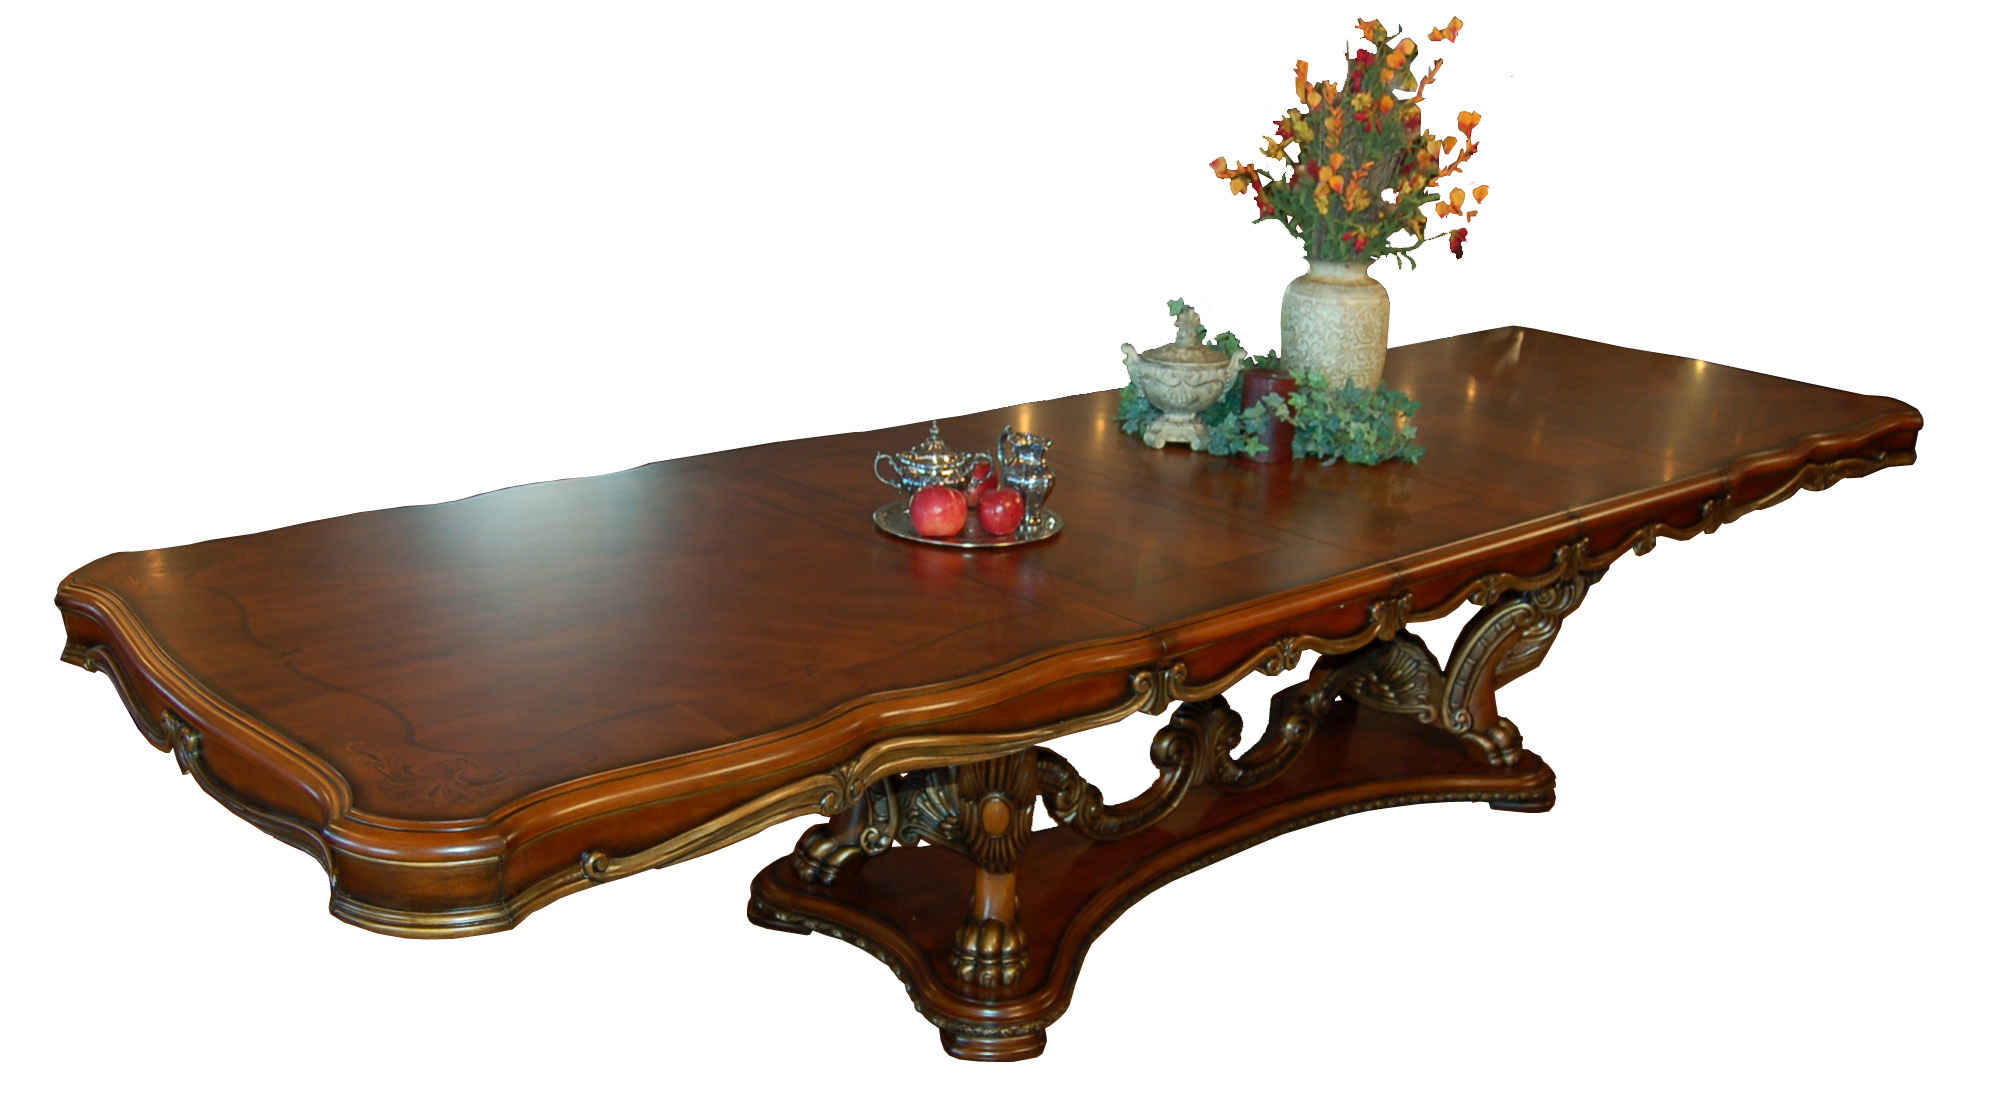 Mahogany And More Dining Tables Ornate French Rococo Large Dining Room Table